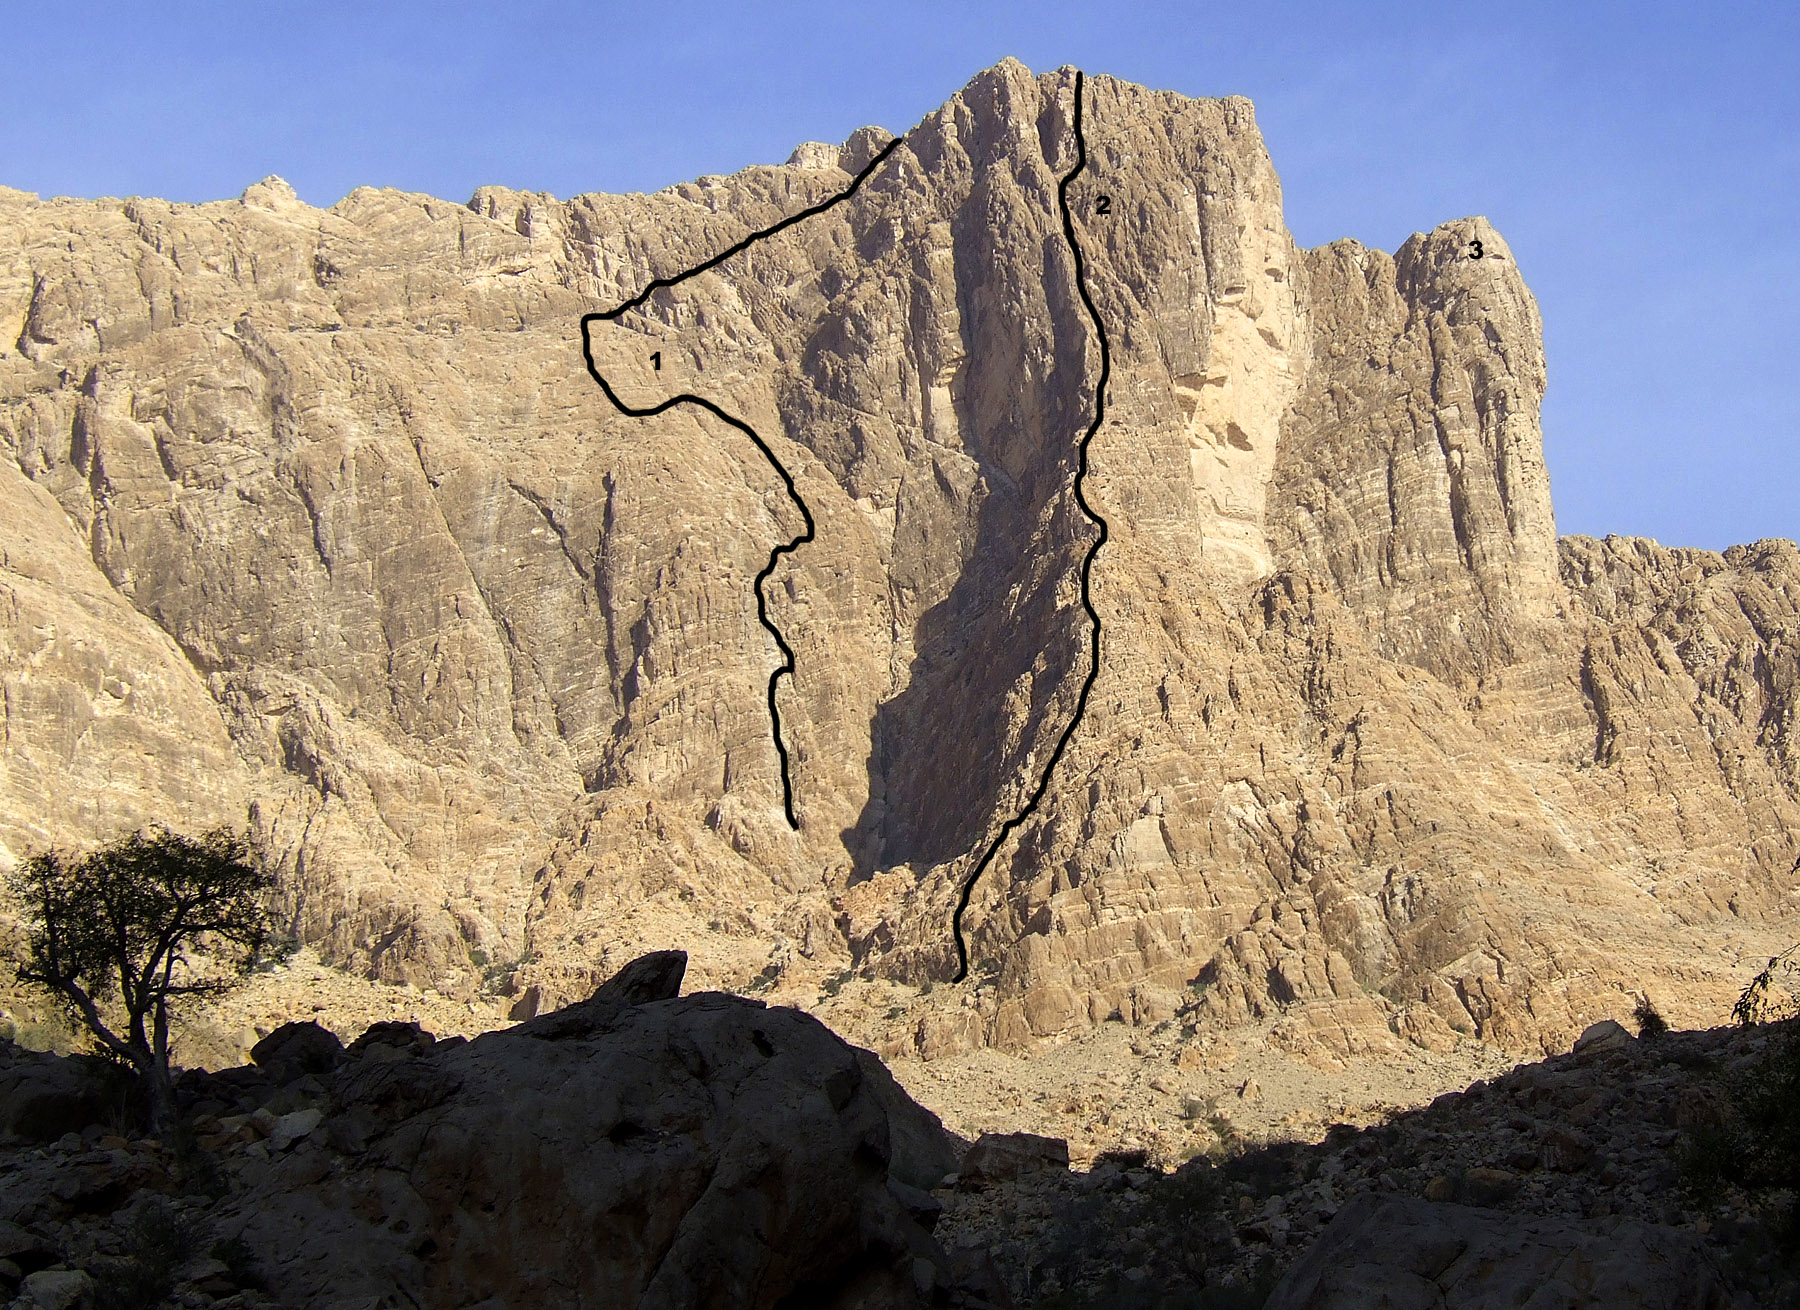 The right-hand end of the southwest face of Jabal Kawr, showing (1) M'Seed Rappers, and (2) Queen of Sheba (British E1 5a, Hornby-Ramsden, 1999). Wadi Girls (TD, Barlow-Nonis, 1999) takes front face of tower marked (3).